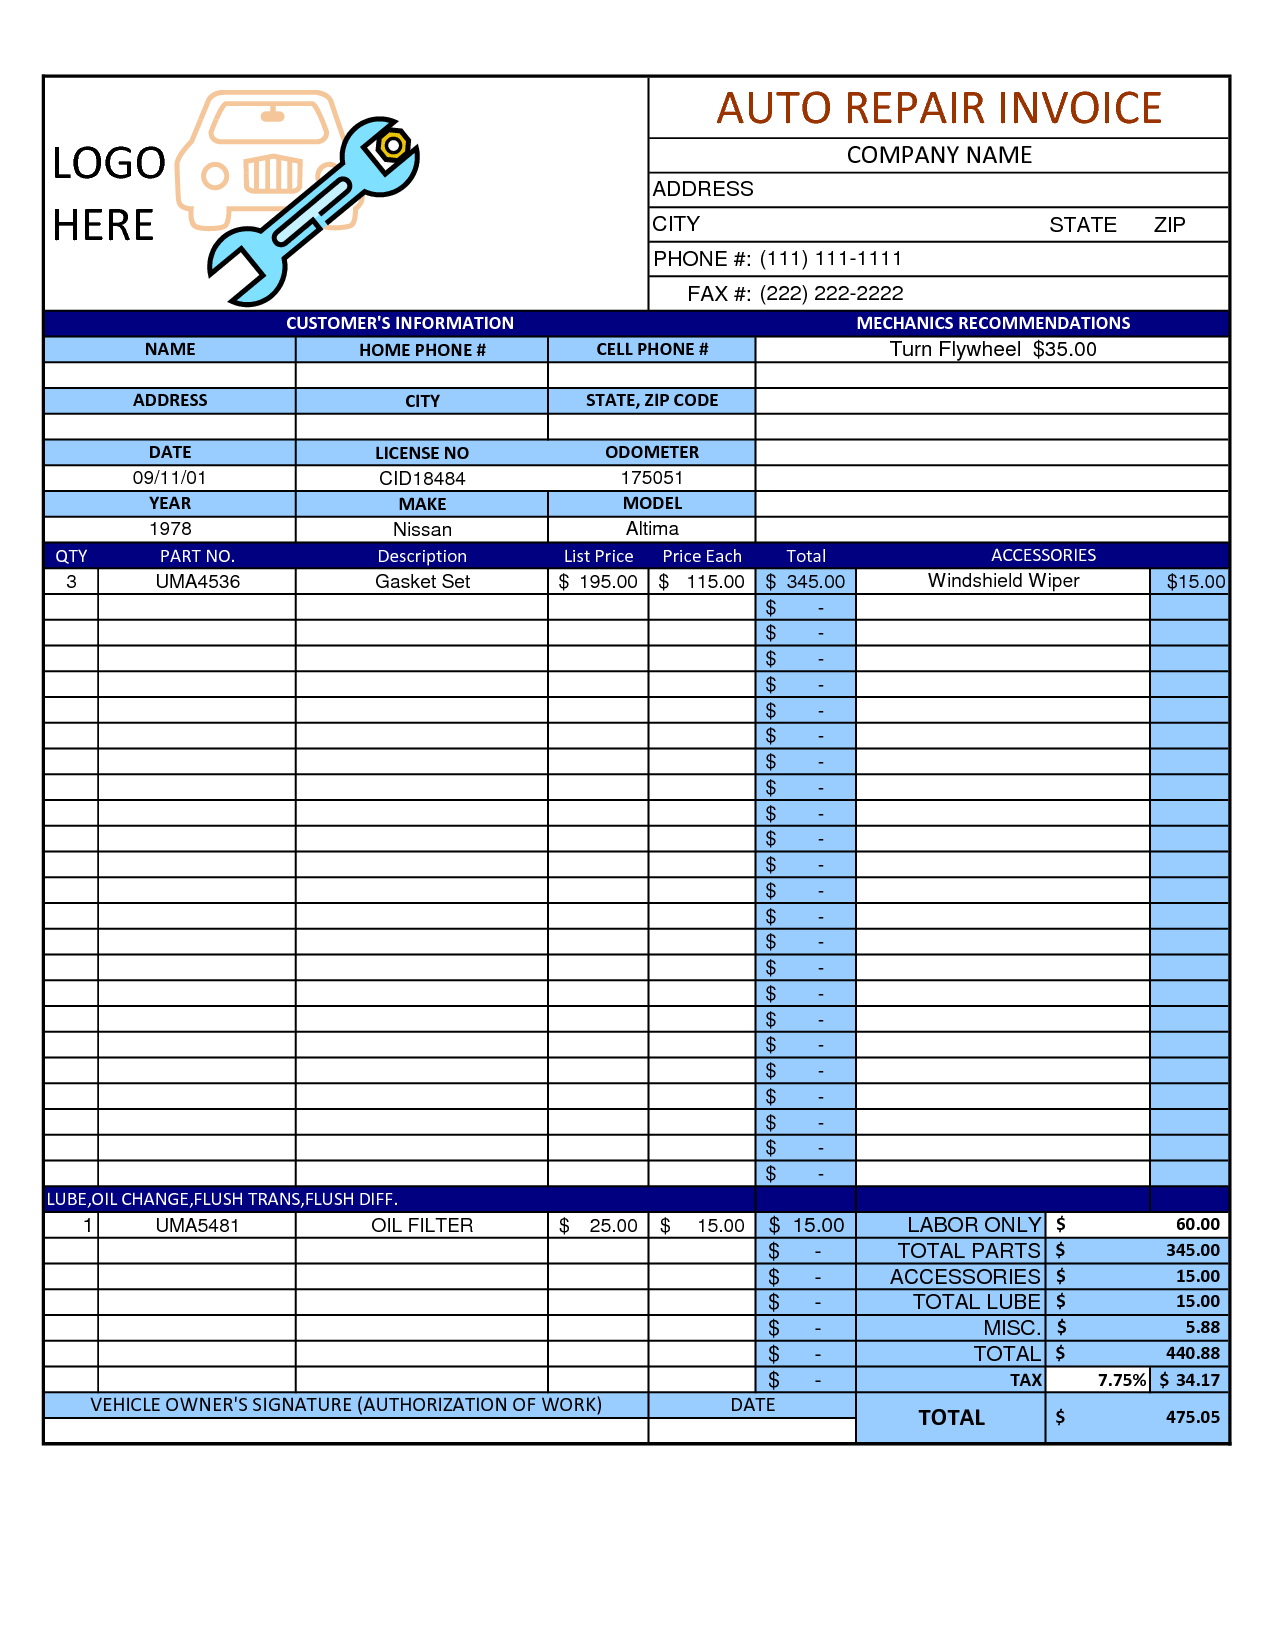 Fake Rent Receipts Excel Auto Repair Invoice Template Word  Invoice Example Joomla Invoice Pdf with Rent Receipt Formats Auto Repair Invoice Template Word Auto Repair Shop Invoice Invoic Tem  Template Excel Florida Pdf Word Quickbooks Detailing Body Service Free For  Sample Code  Target Returns Without A Receipt Word